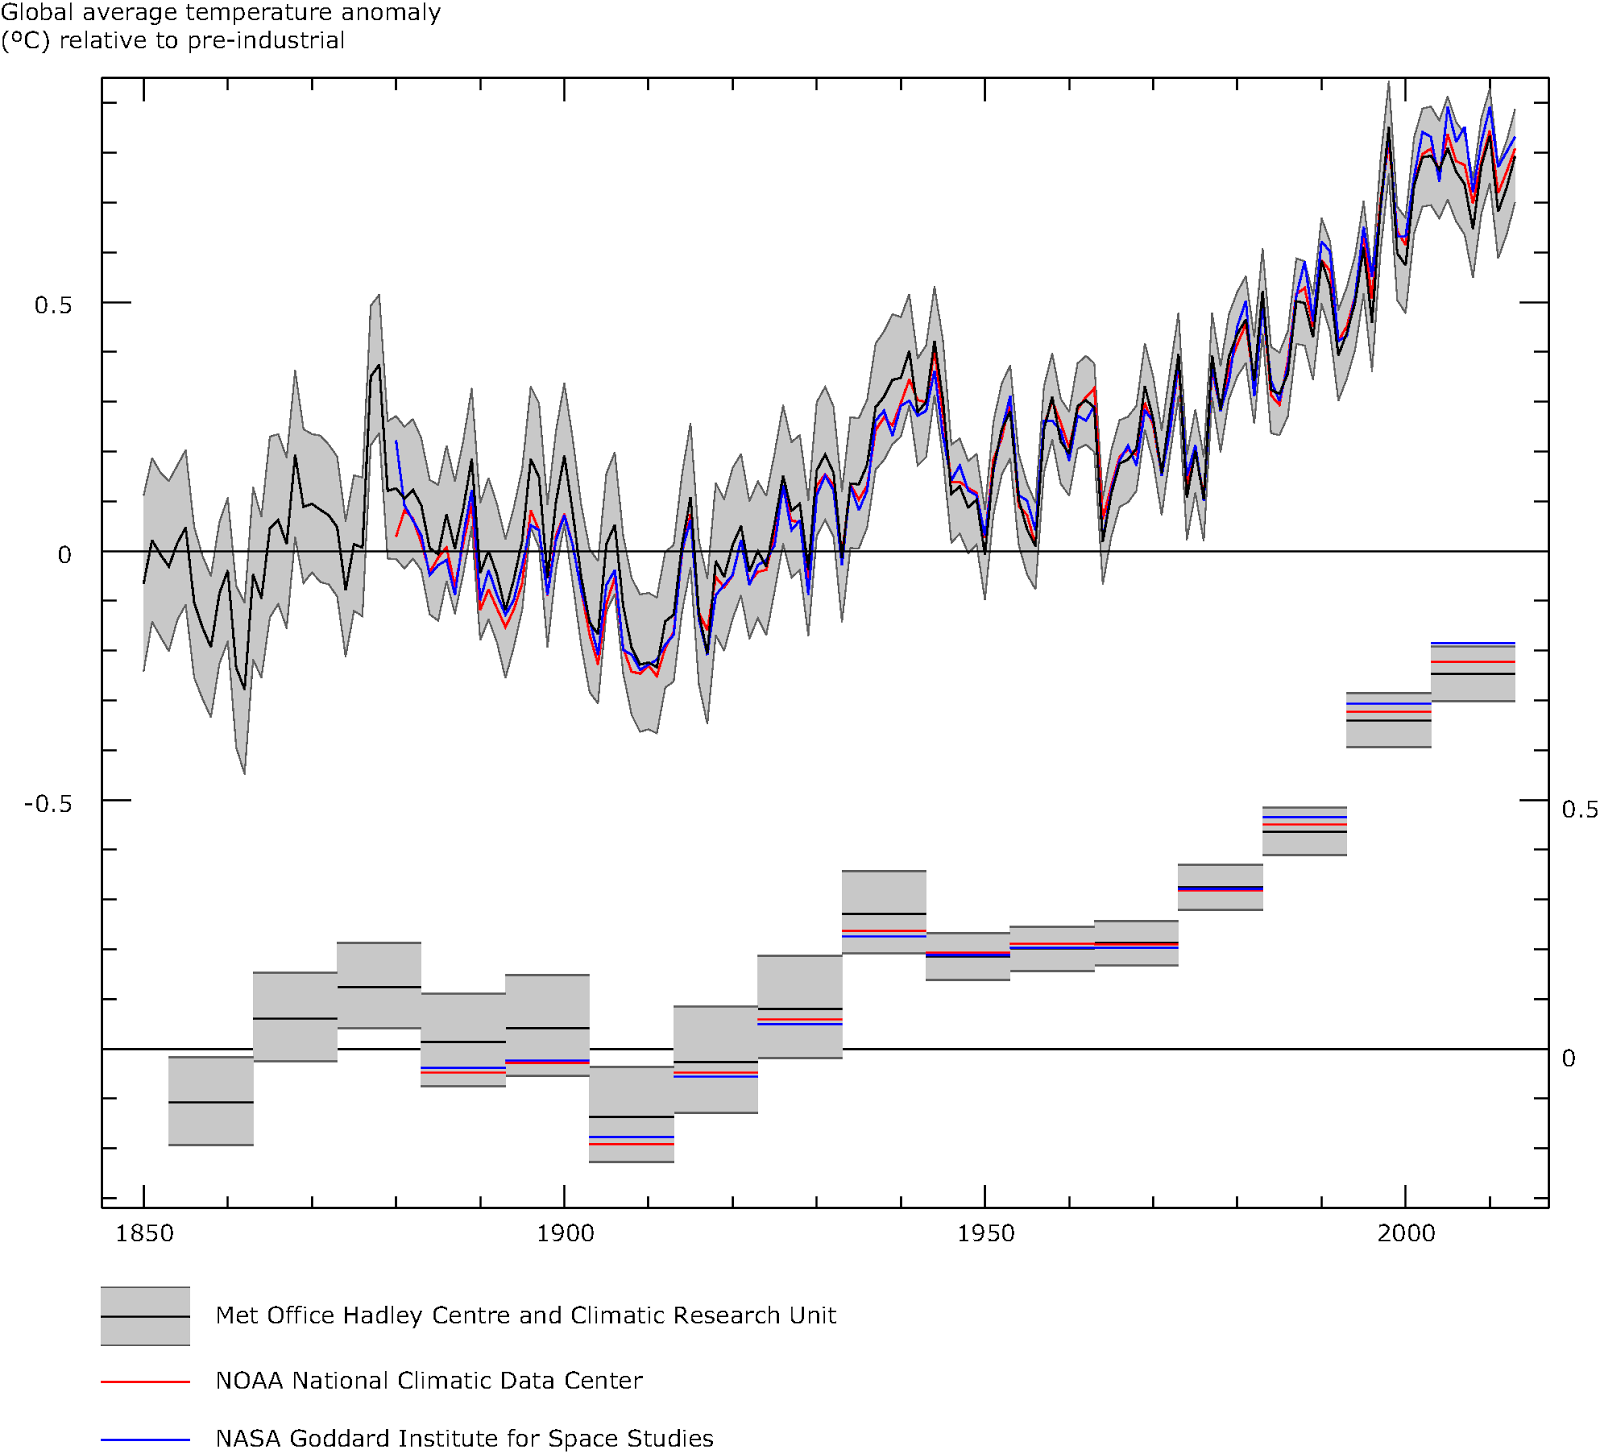 link: http://www.eea.europa.eu/data-and-maps/figures/global-annual-average-temperature-deviations-1850-2007-relative-to-the-1850-1899-average-in-oc-the-lines-refer-to-10-year-moving-average-the-bars-to-the-annual-land-and-ocean-global-average-9